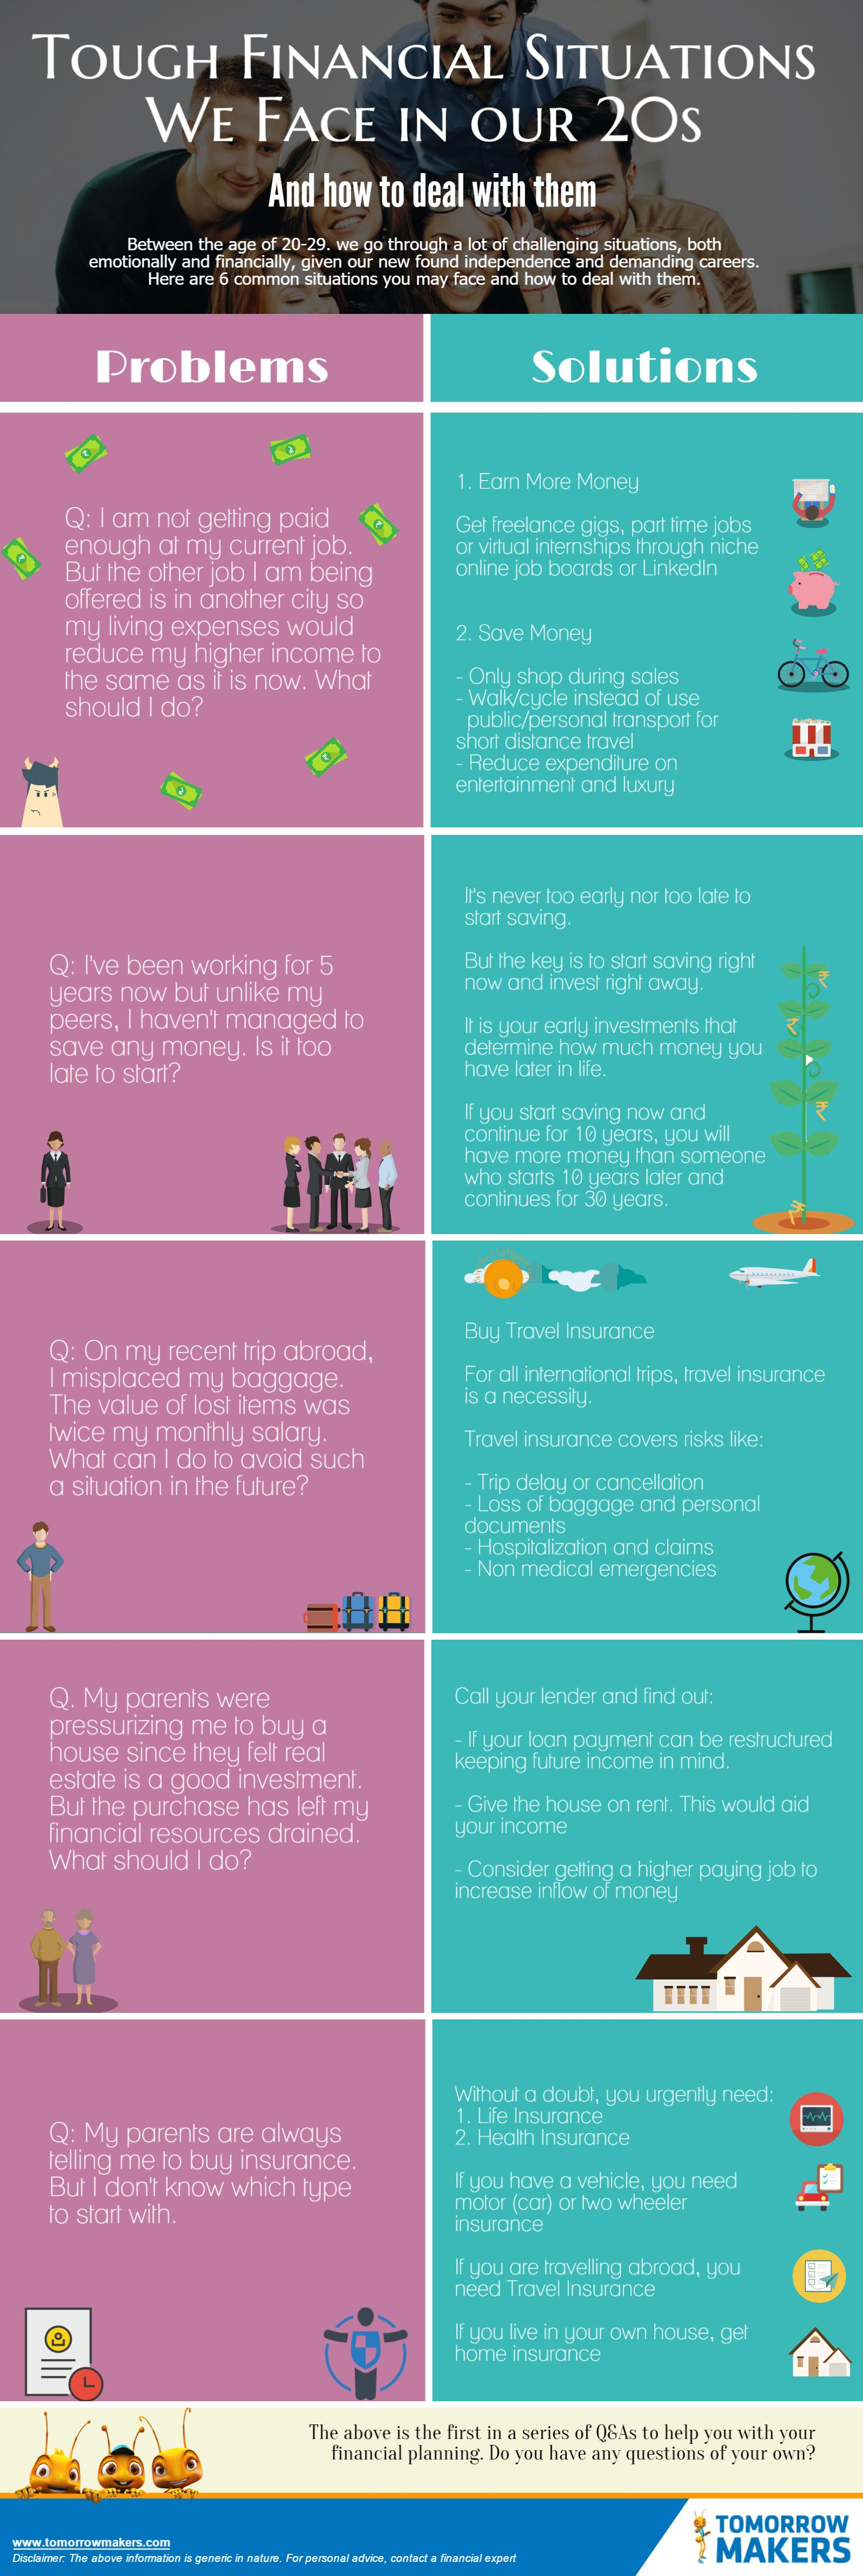 tough-financial-situations-we-face-in-our-20s-infographic